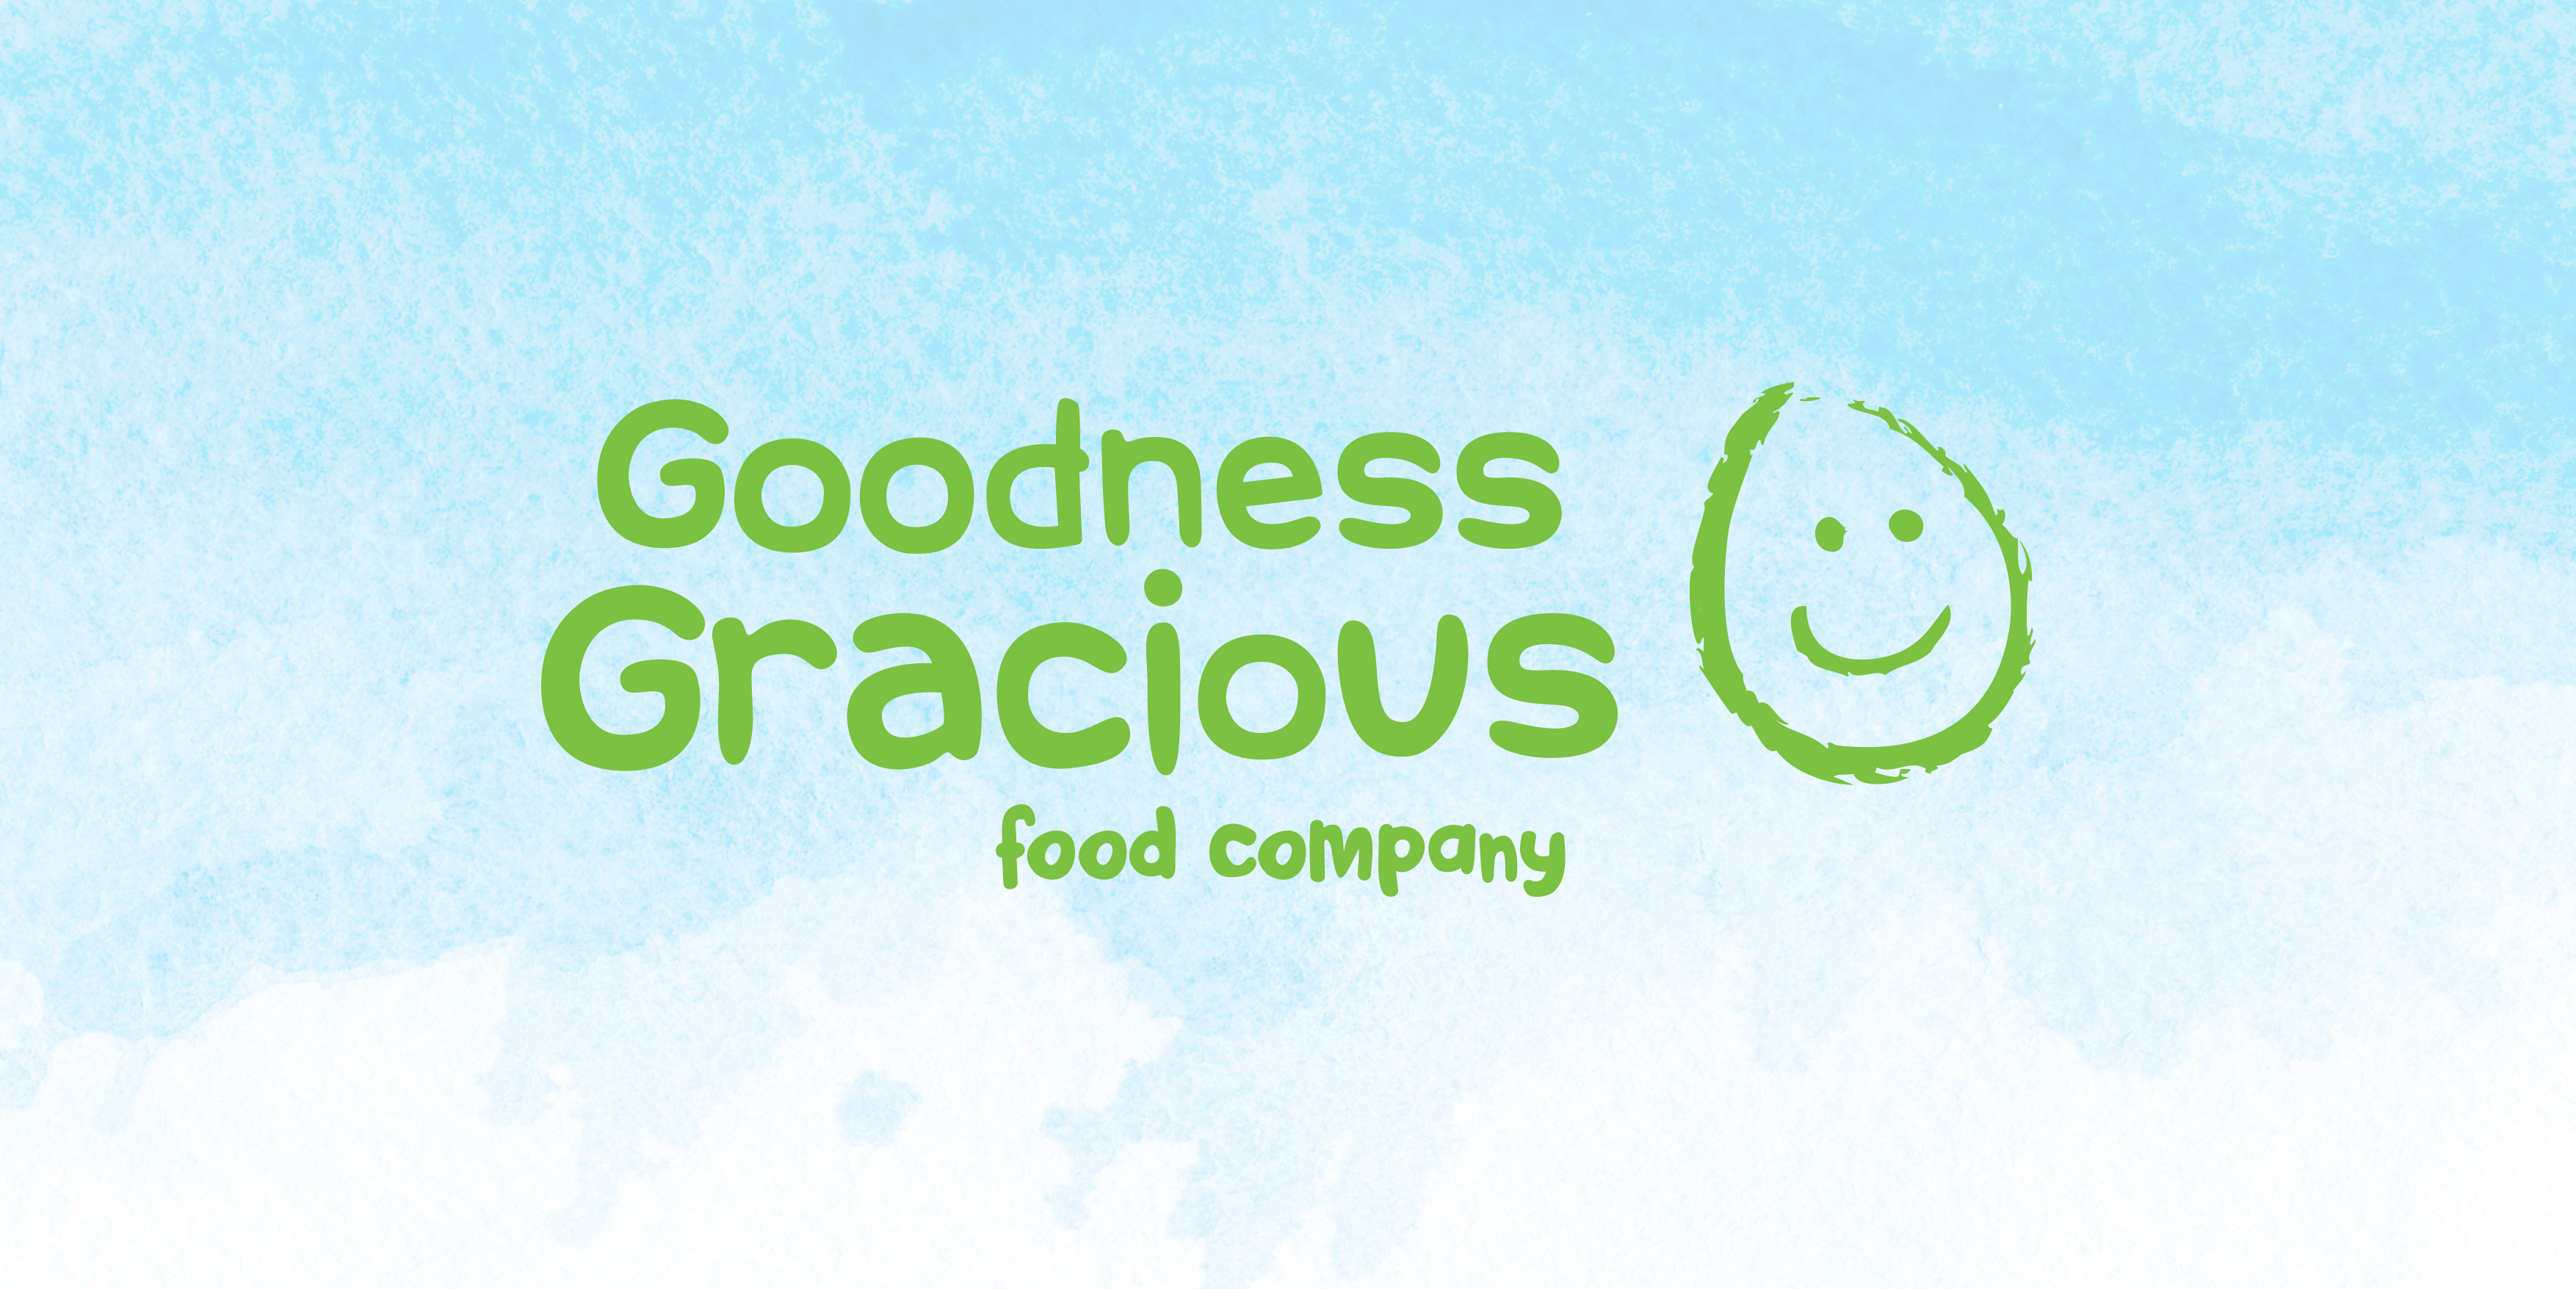 Goodness Gracious Brand Design by Toast Food